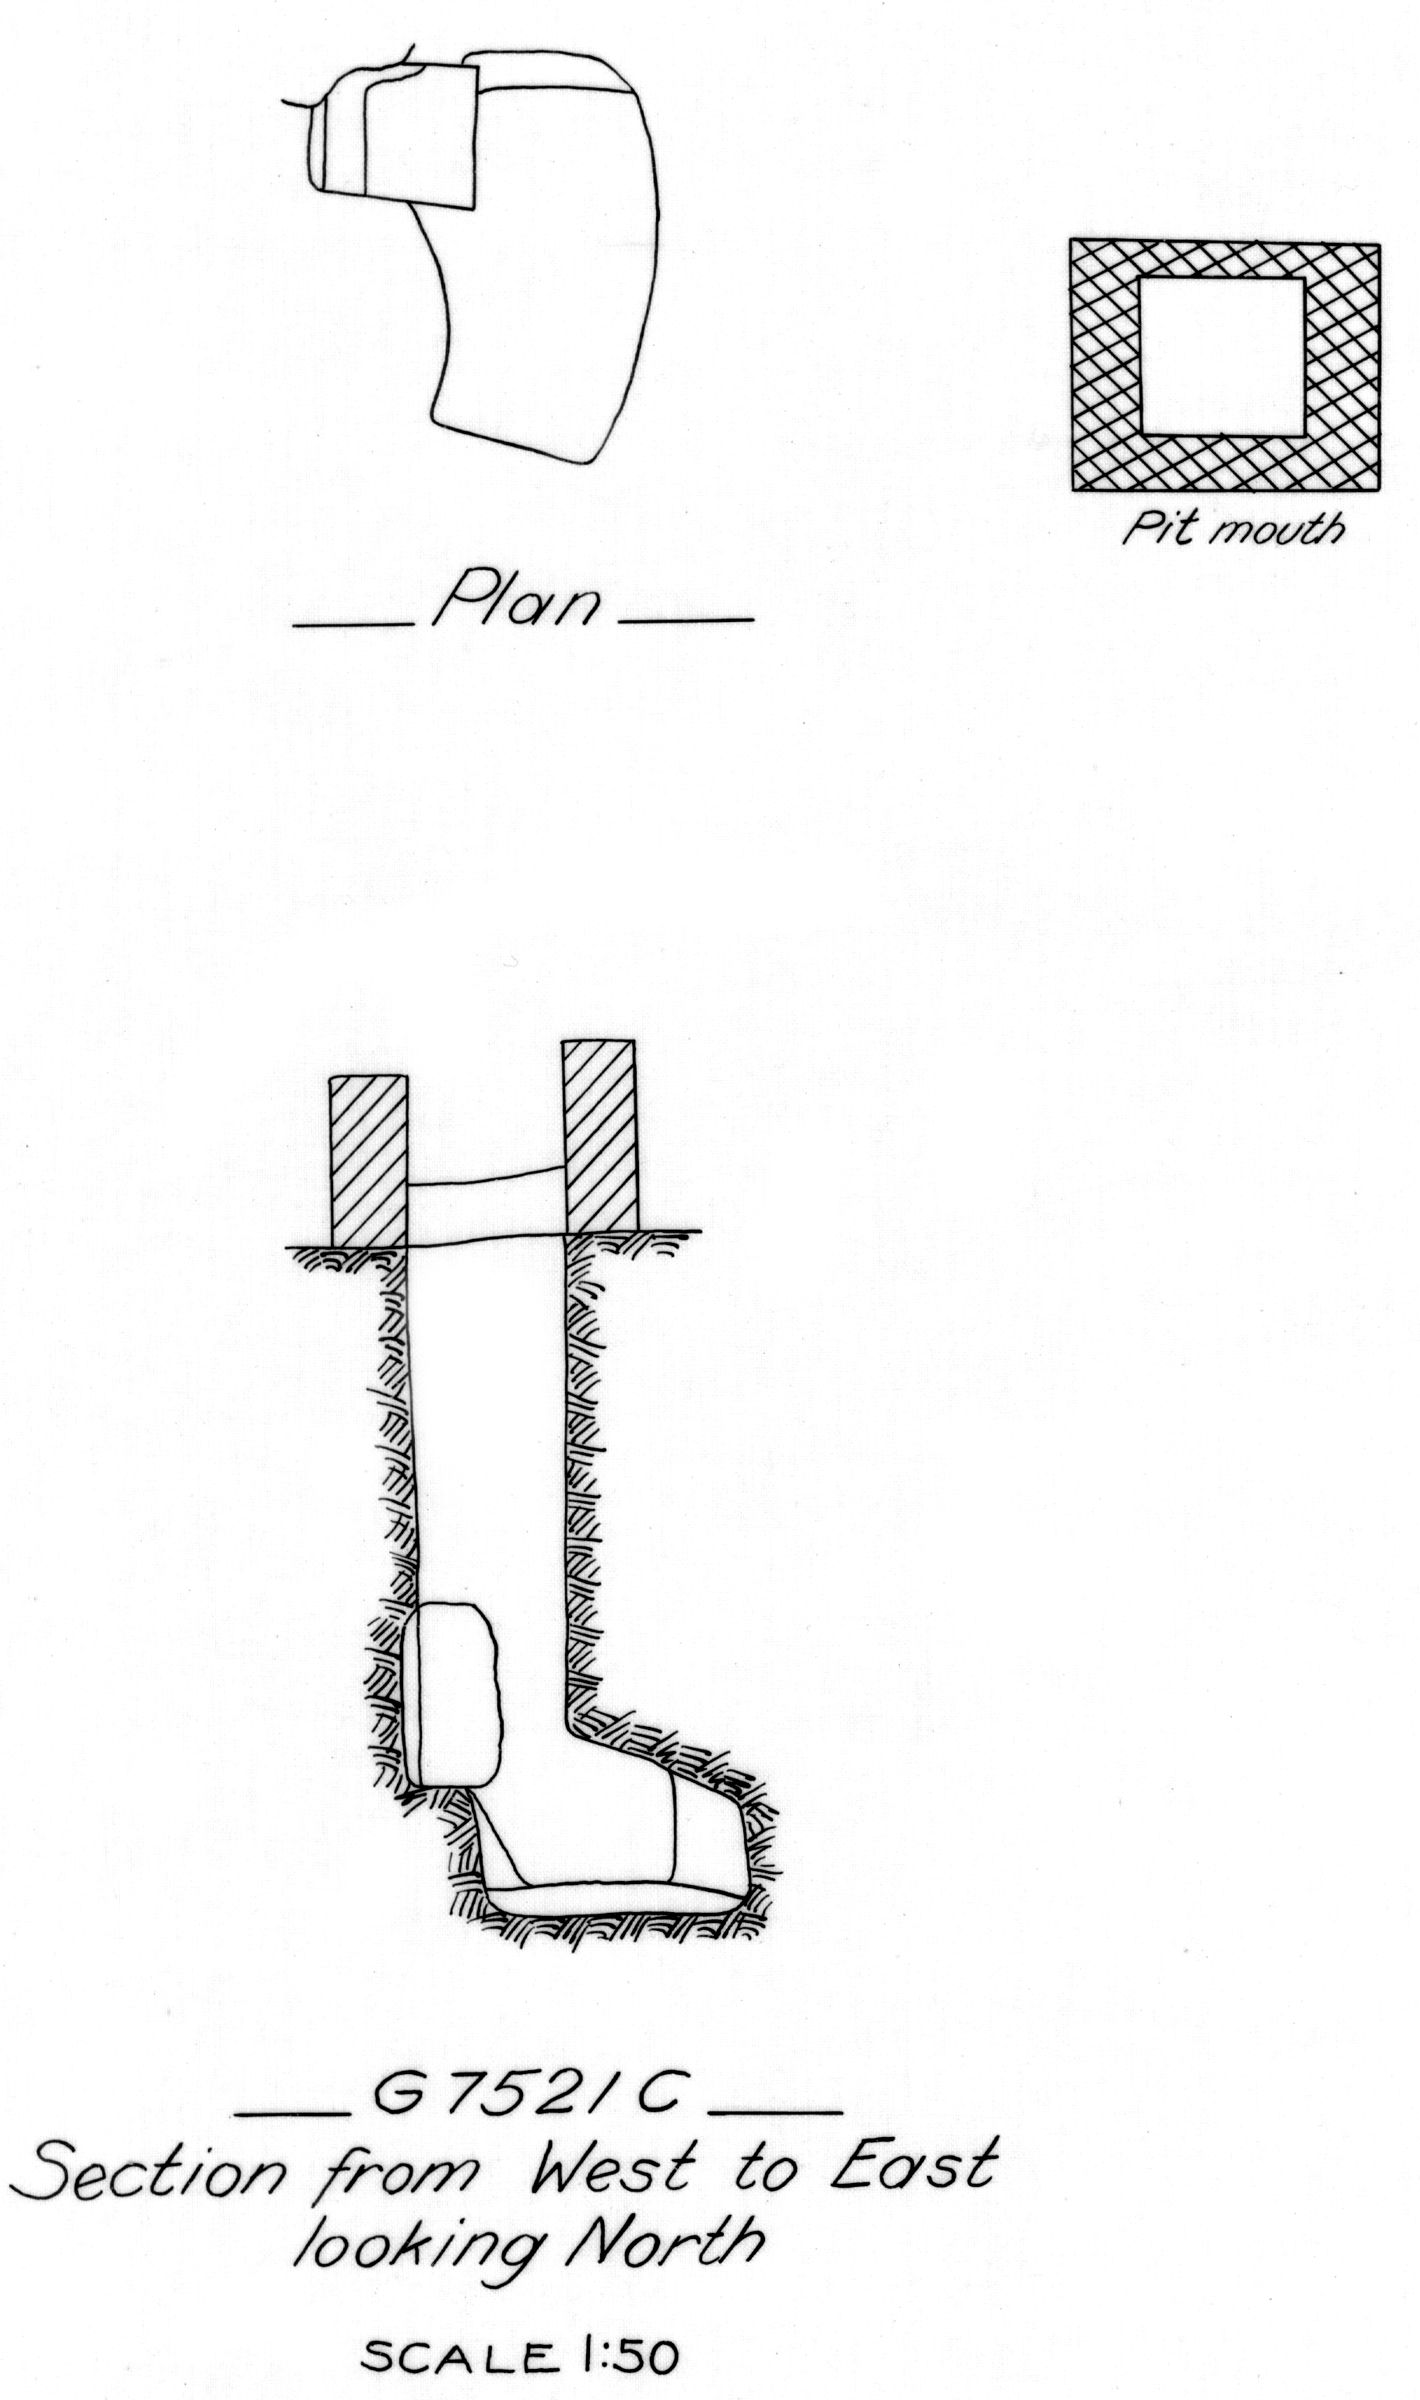 Maps and plans: G 7521, Shaft C